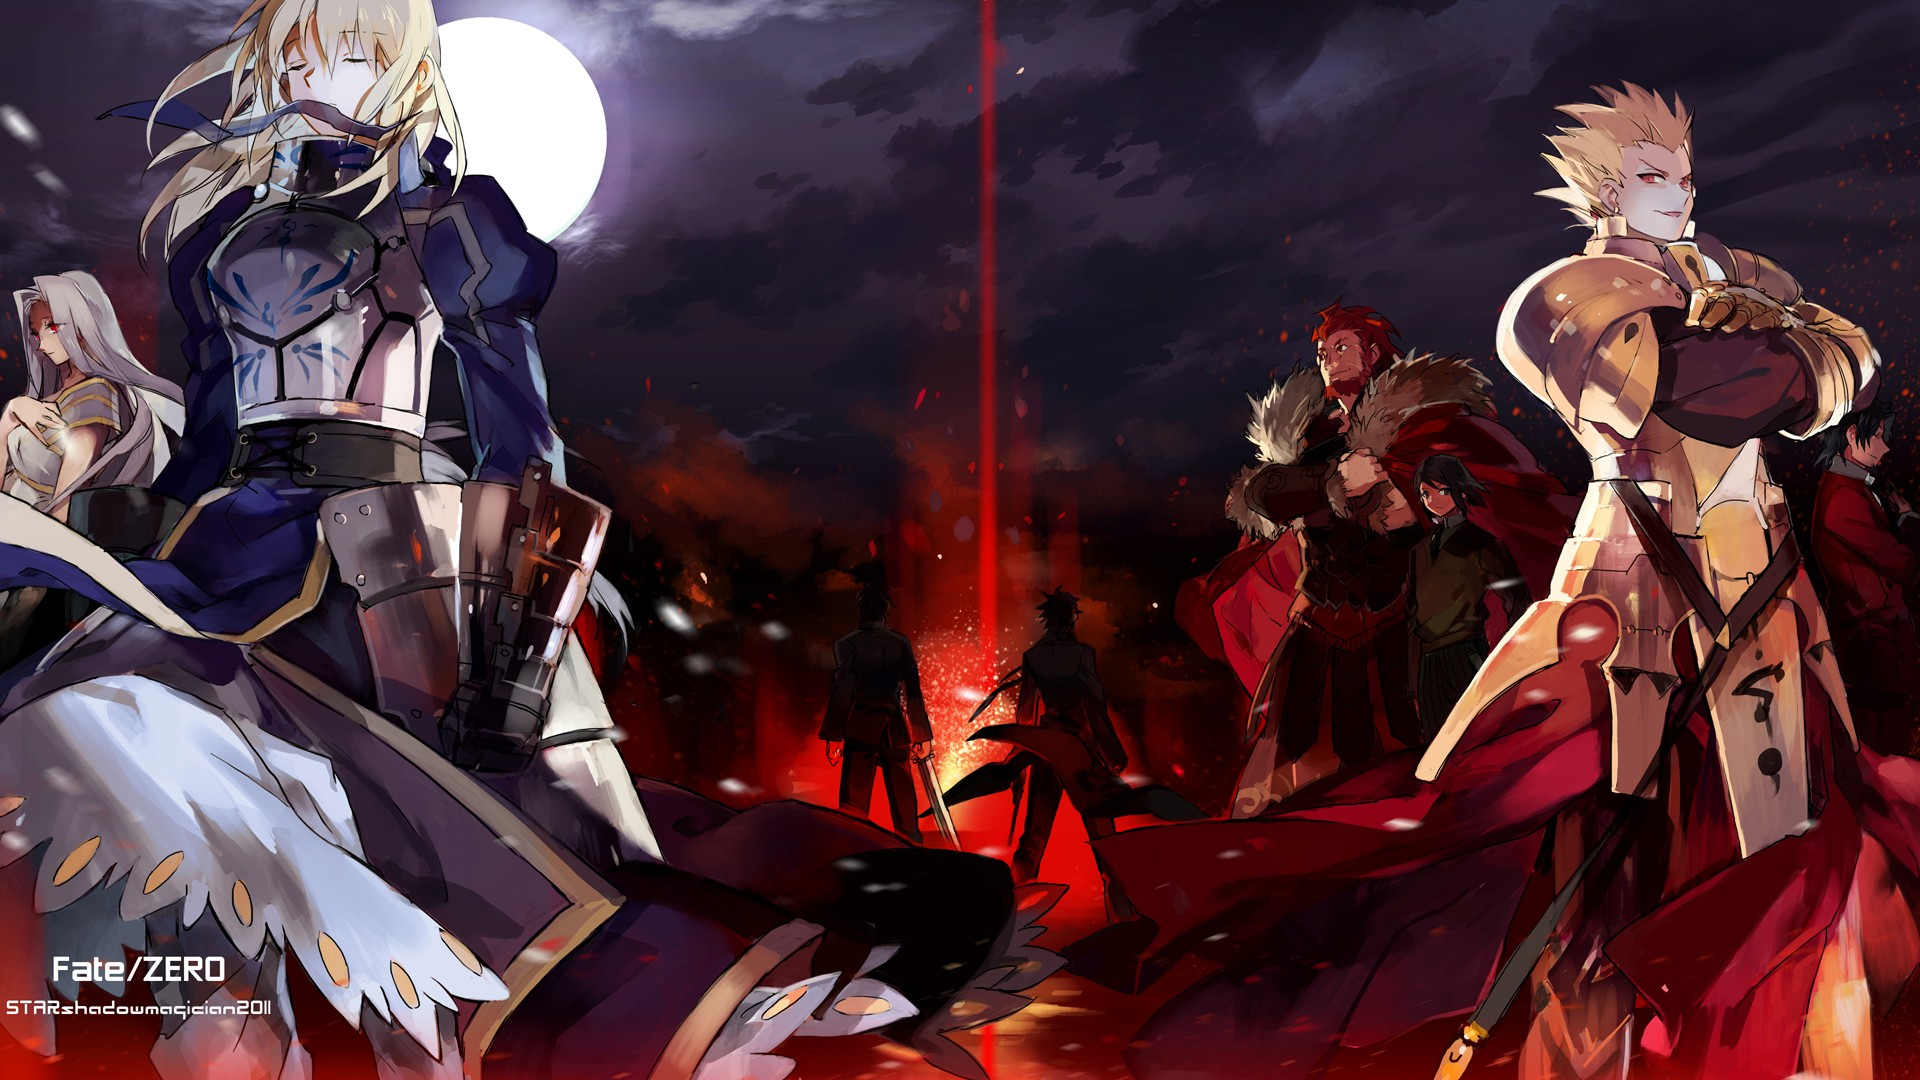 Xem phim Fate/Stay Night - Fate - Stay Night Vietsub